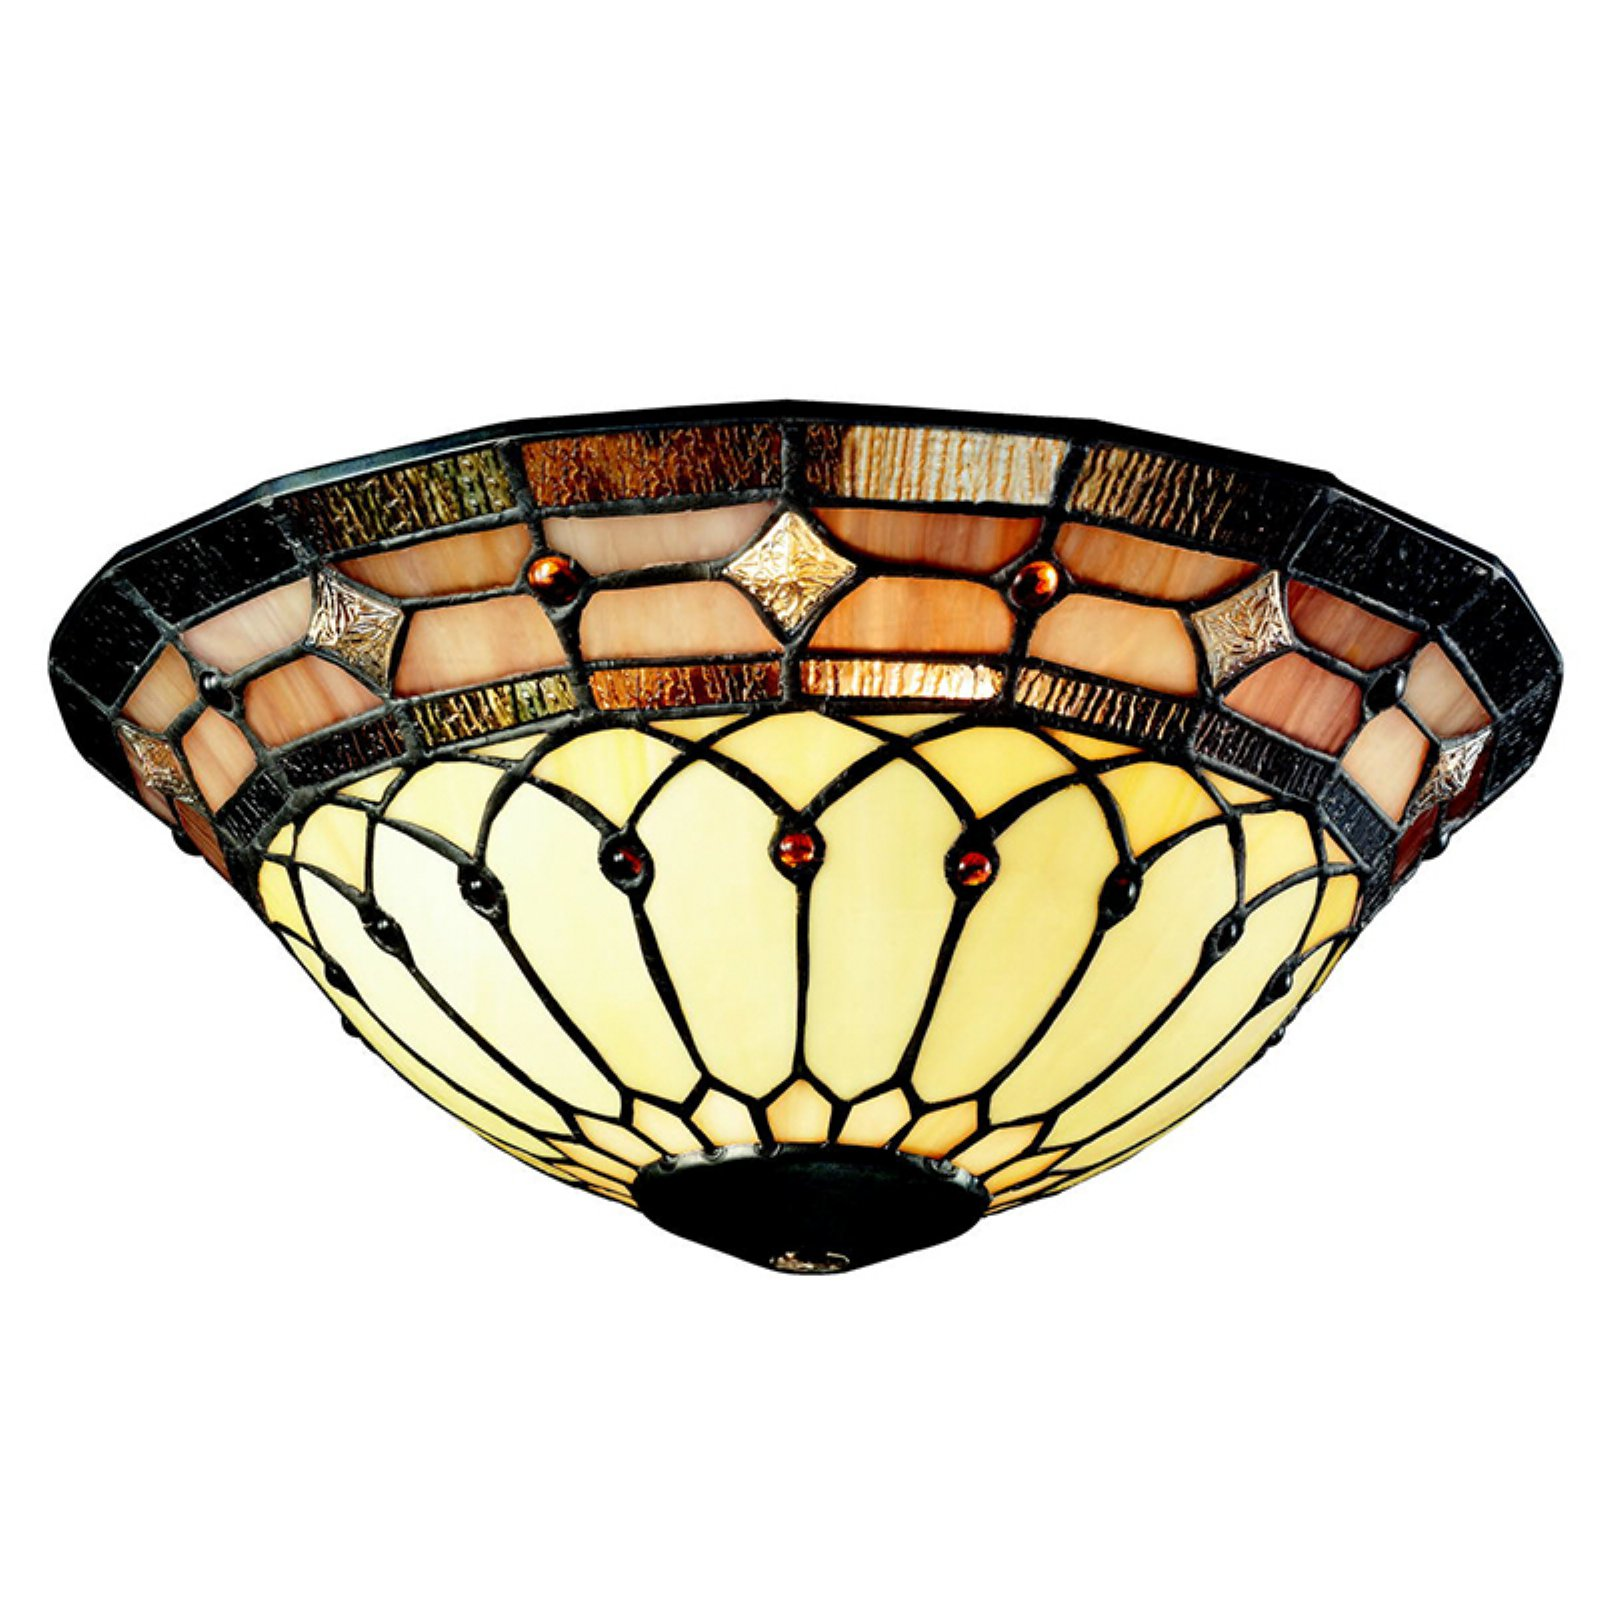 Kichler 340001 11.81 in.Tiffany Universal Art Glass Bowl